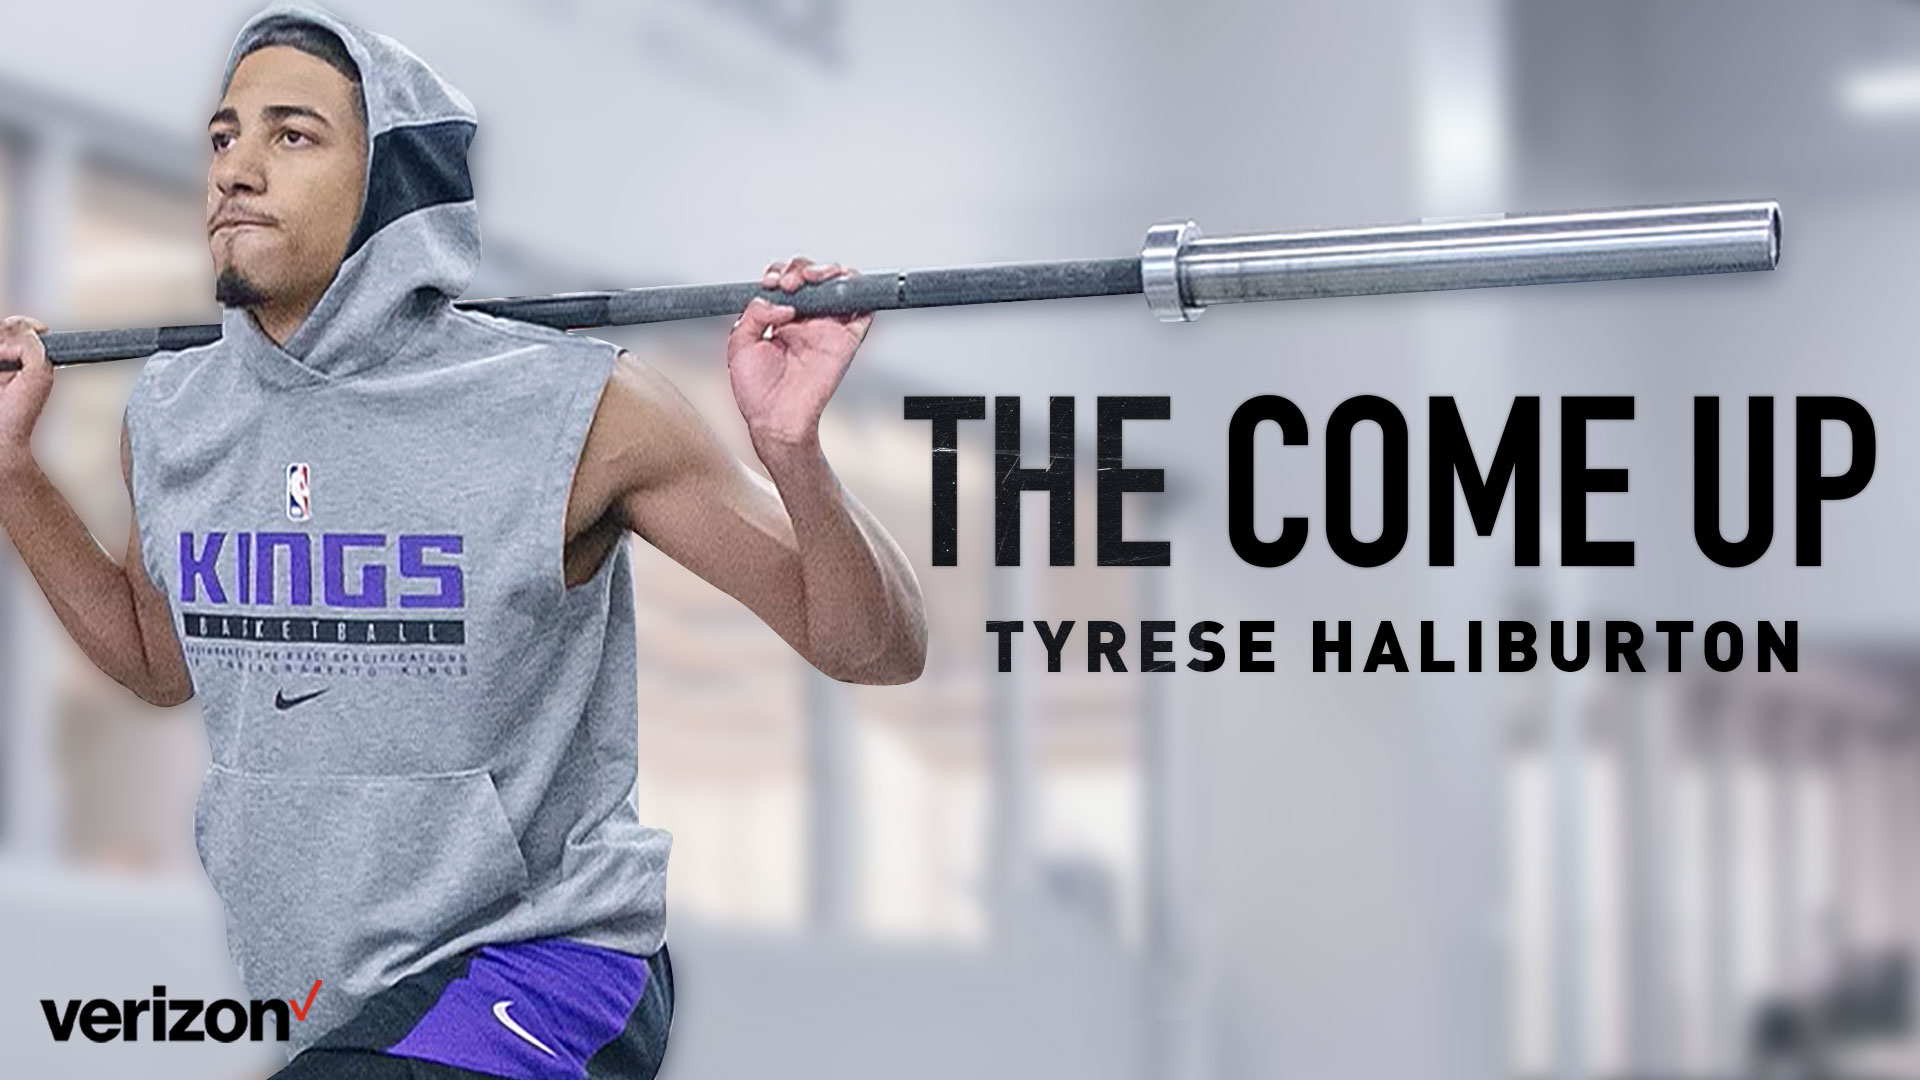 The Come Up: The Tyrese Haliburton Story | Episode 4